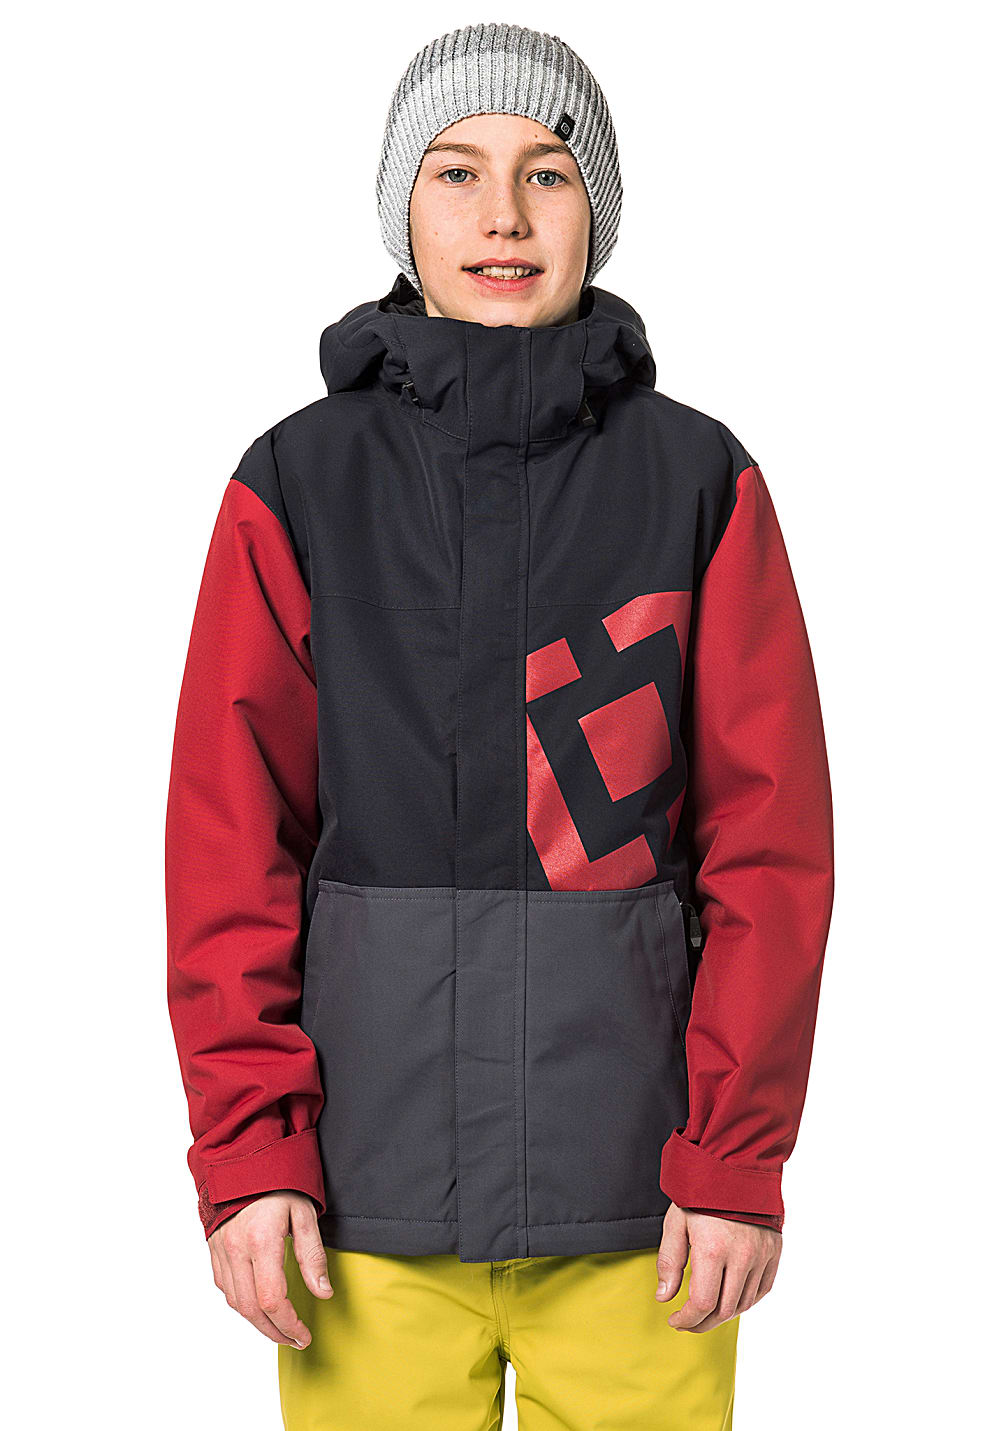 Boysregenwinter - Horsefeathers Falcon Snowboardjacke Rot - Onlineshop Planet Sports